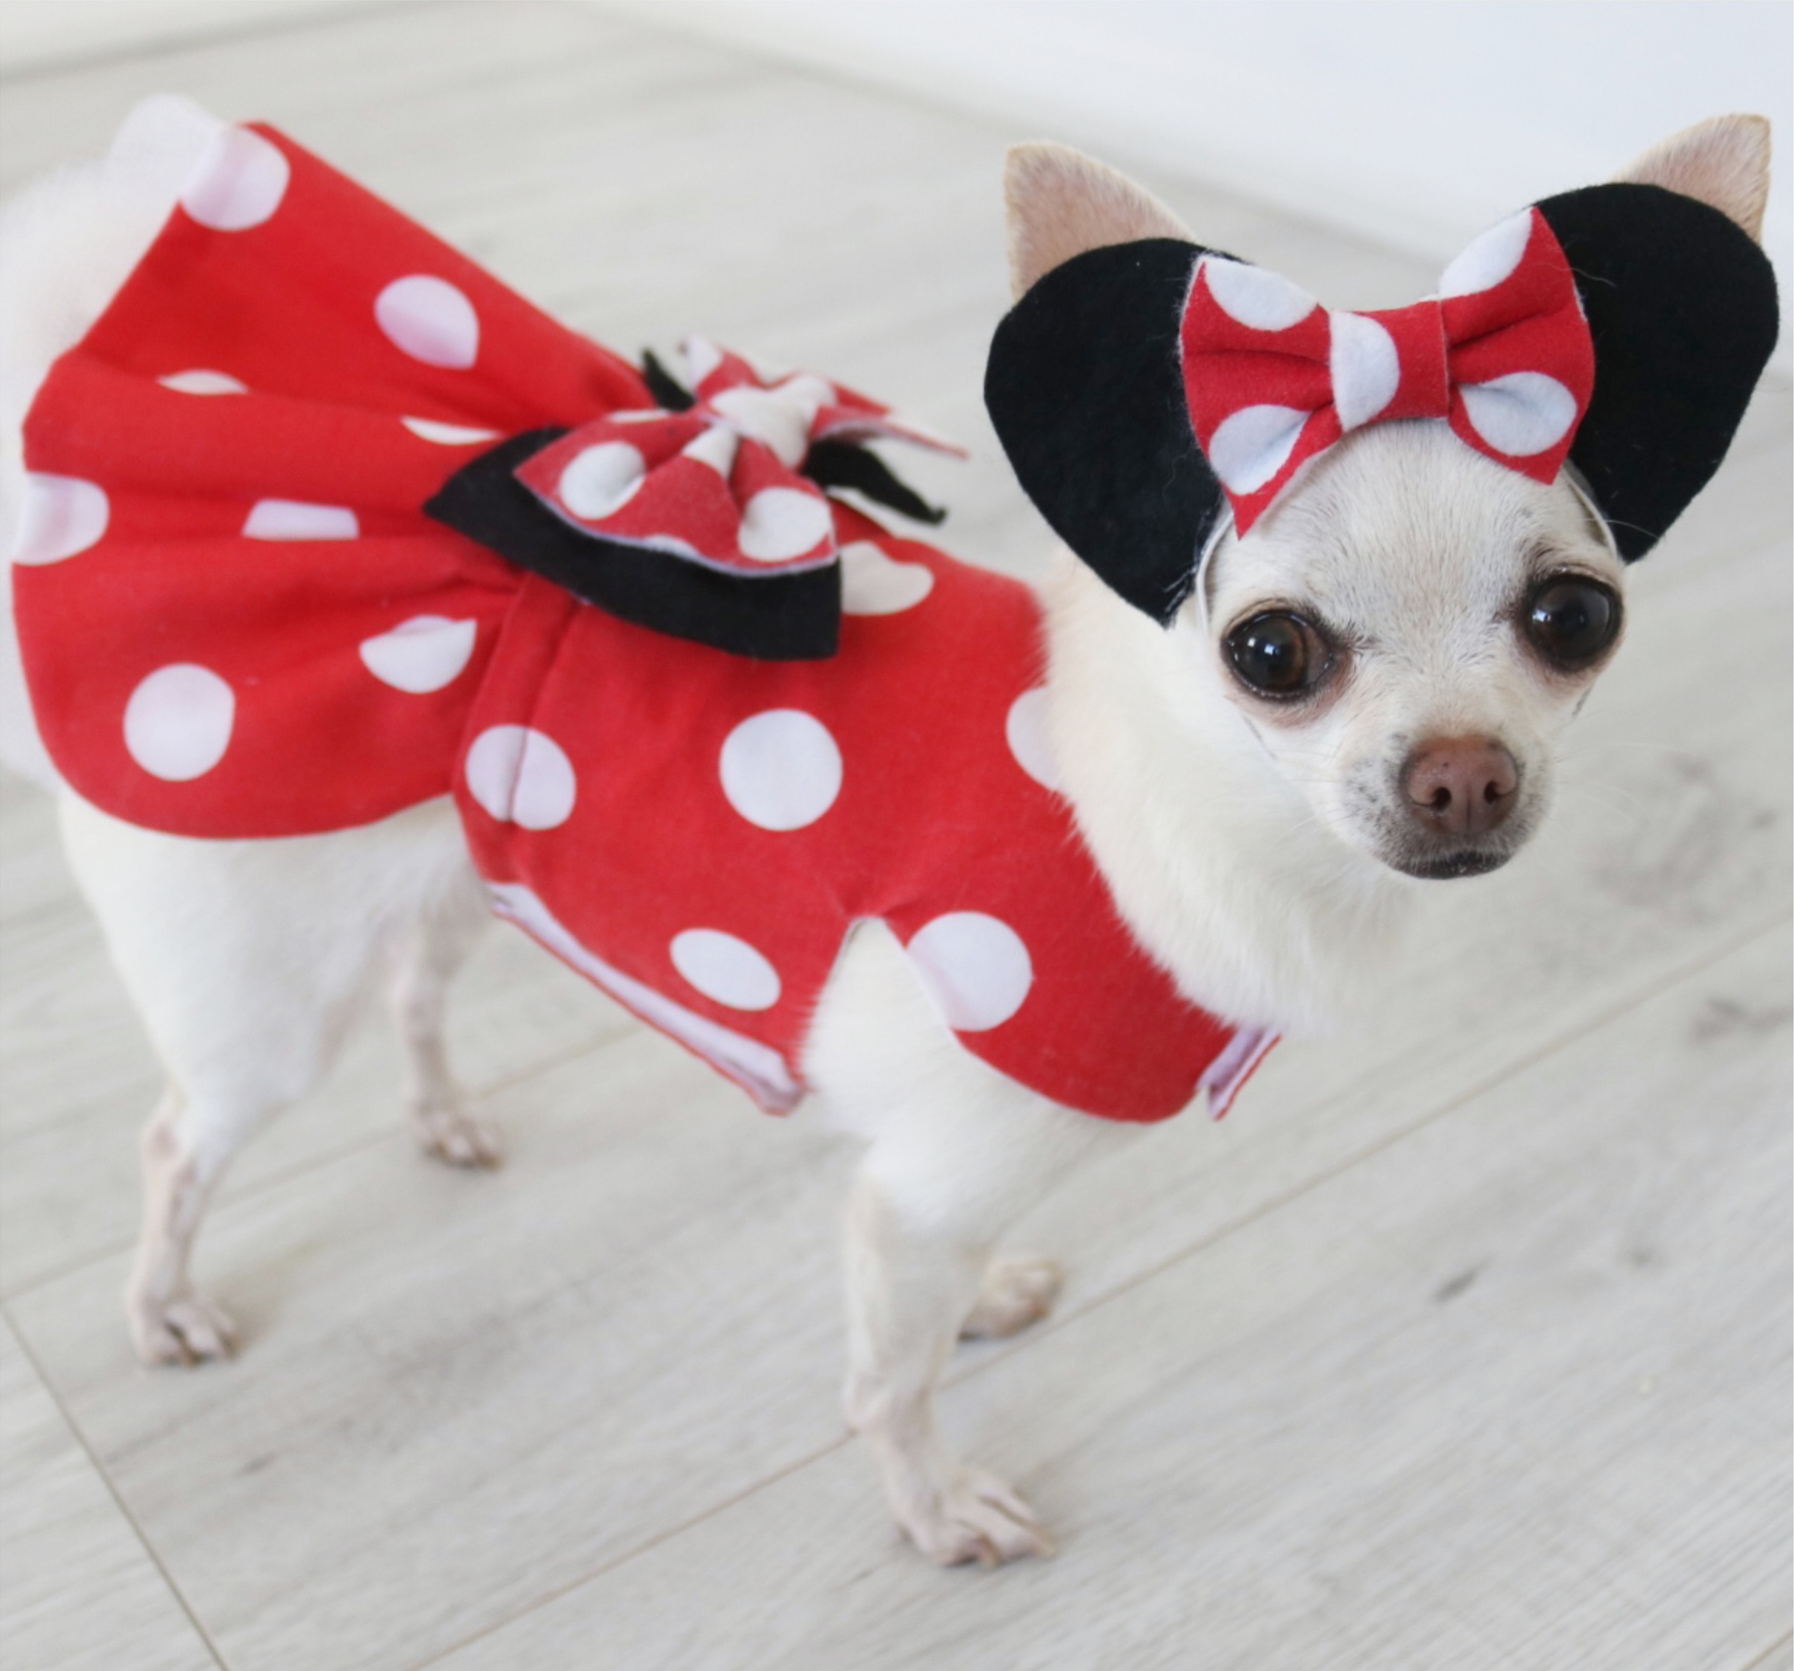 390abfa931 Minnie Mouse Inspired Red and White Polka Dot Dog Dress - Pretty ...